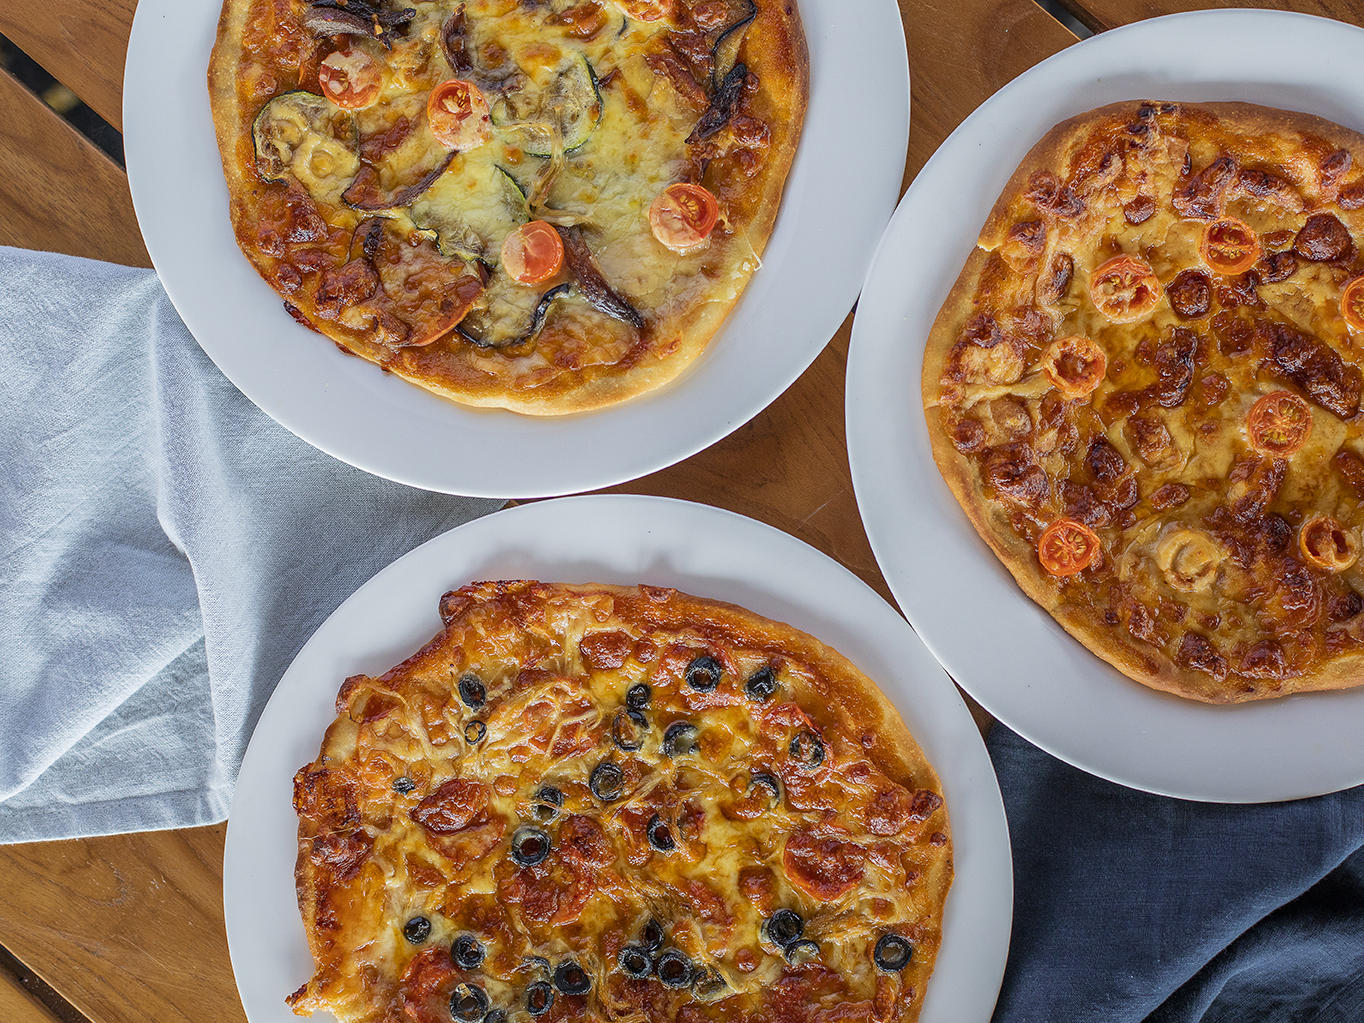 Inkstone Kitchen Menu - Pizzas